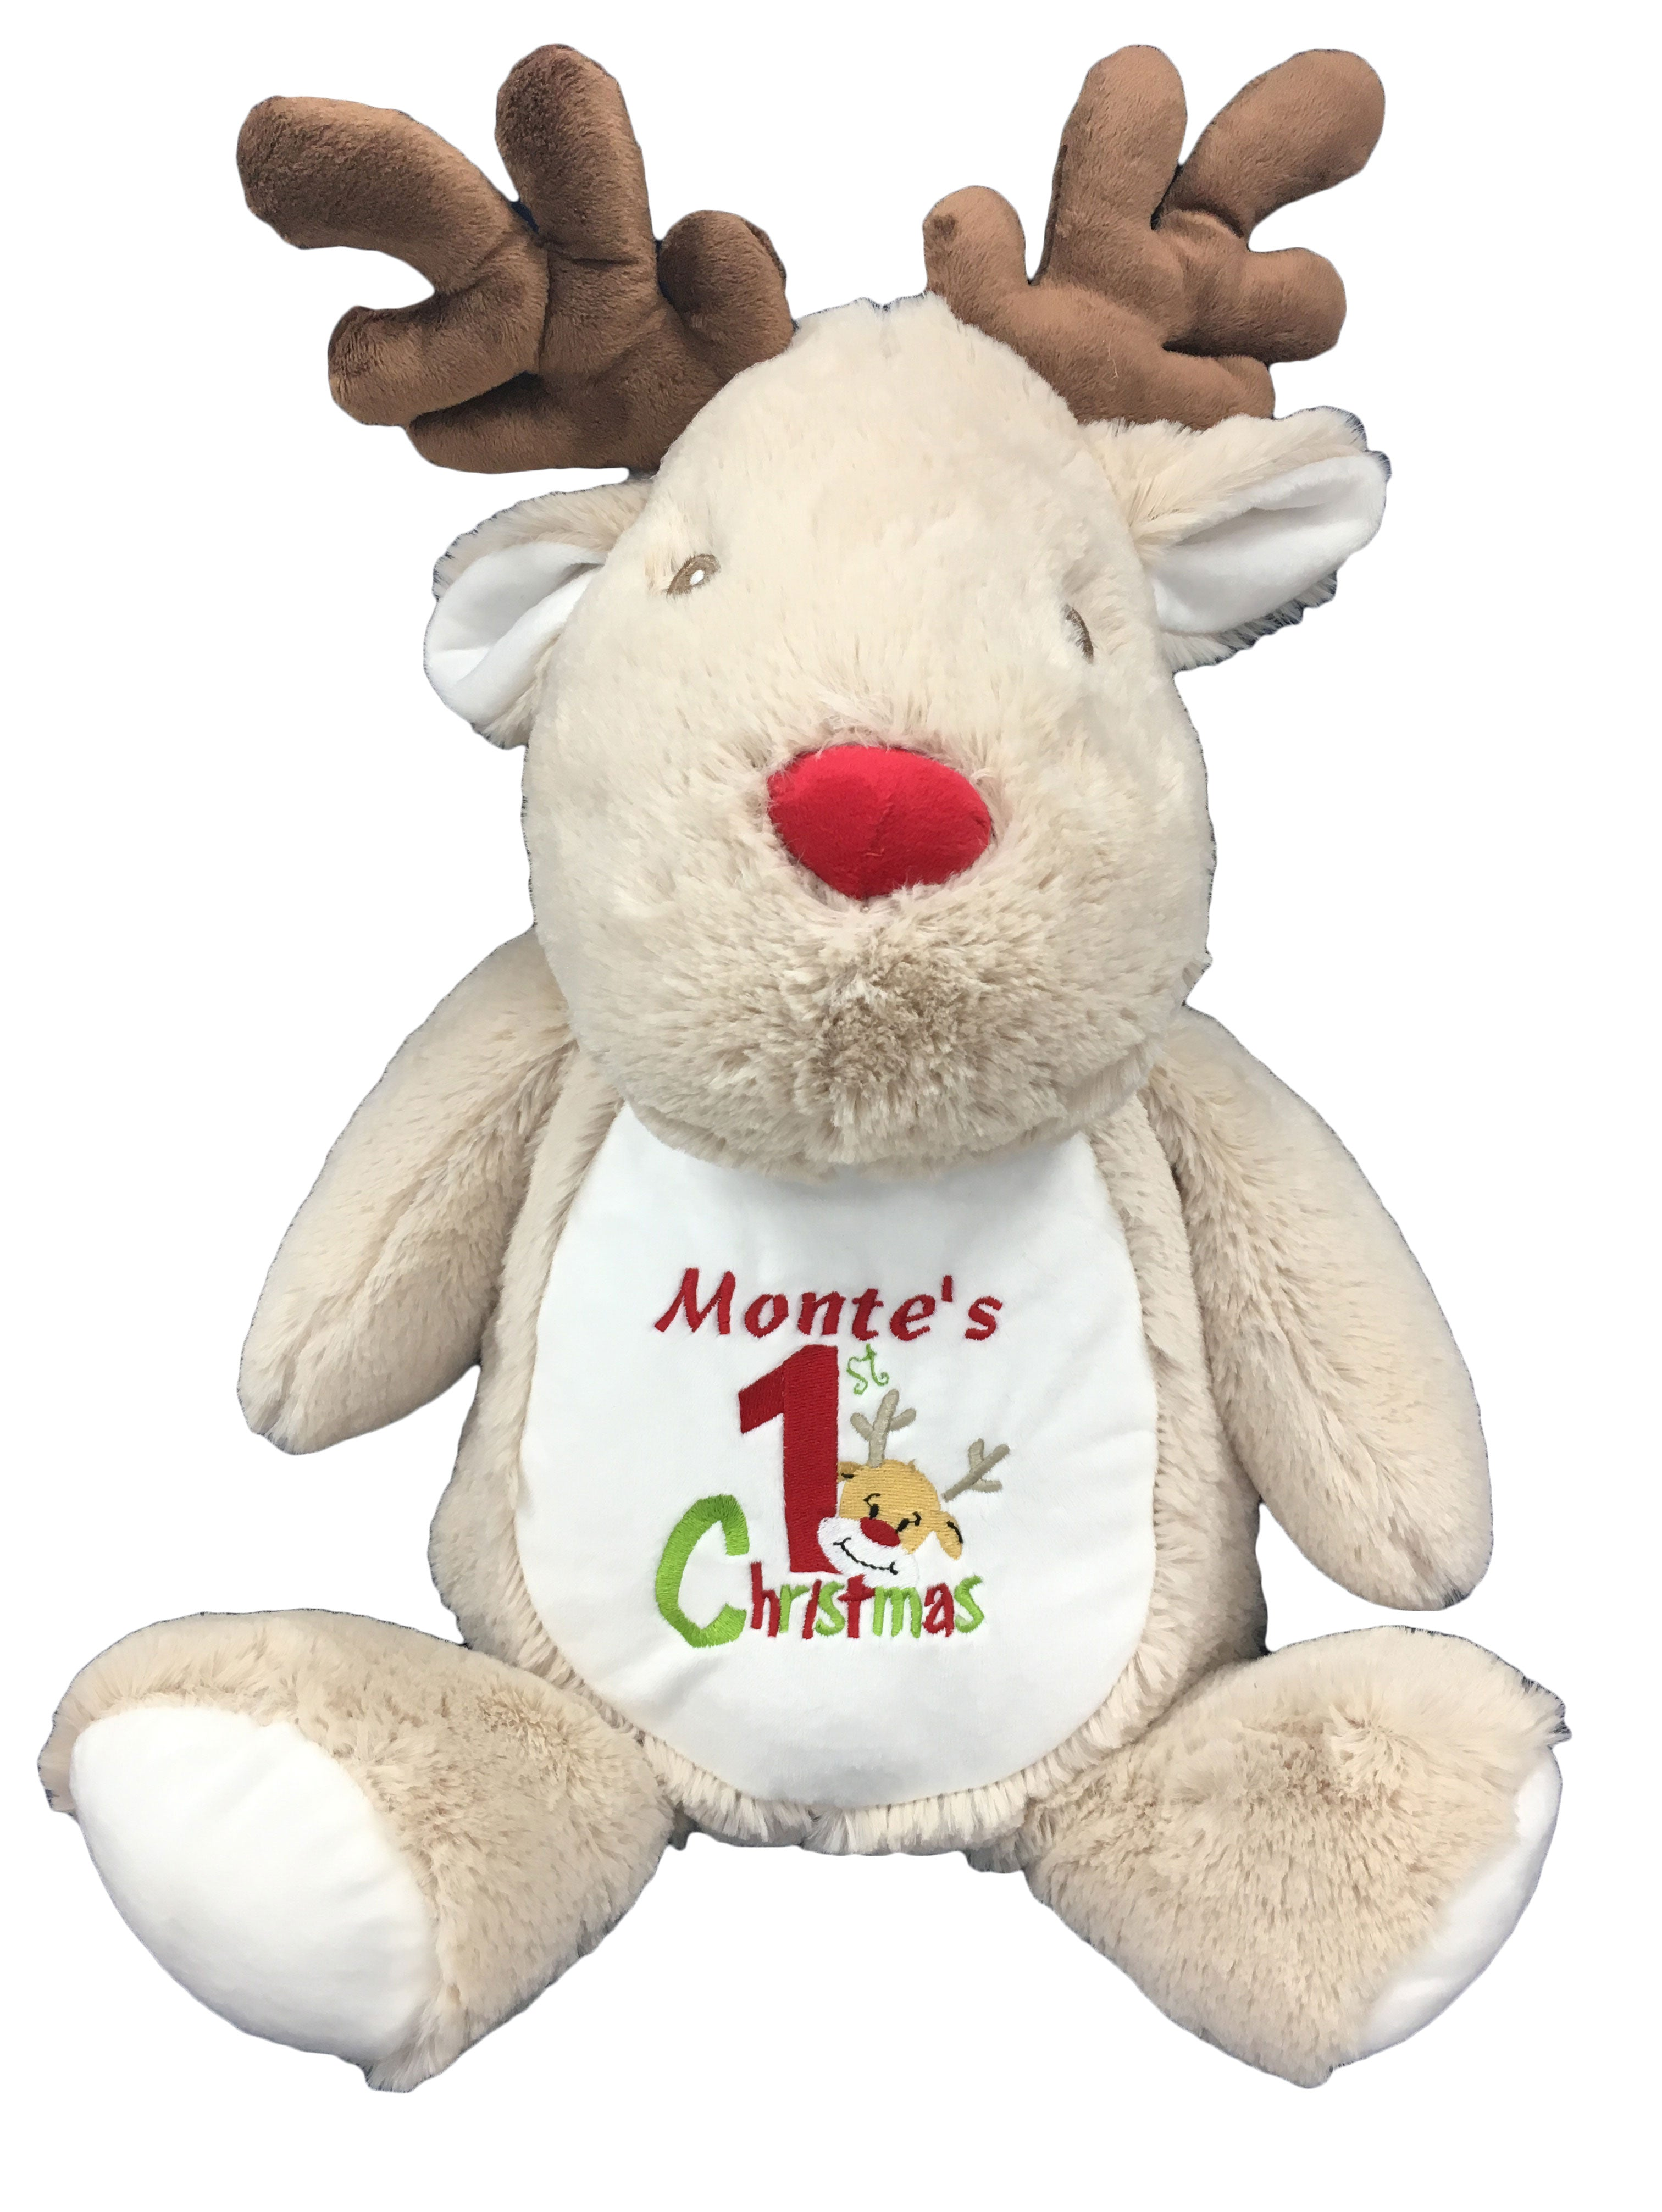 Mumbles Rabbit and Blanket Set Pillow Gift Bunny Soft Toy Throw Fur Baby Studio